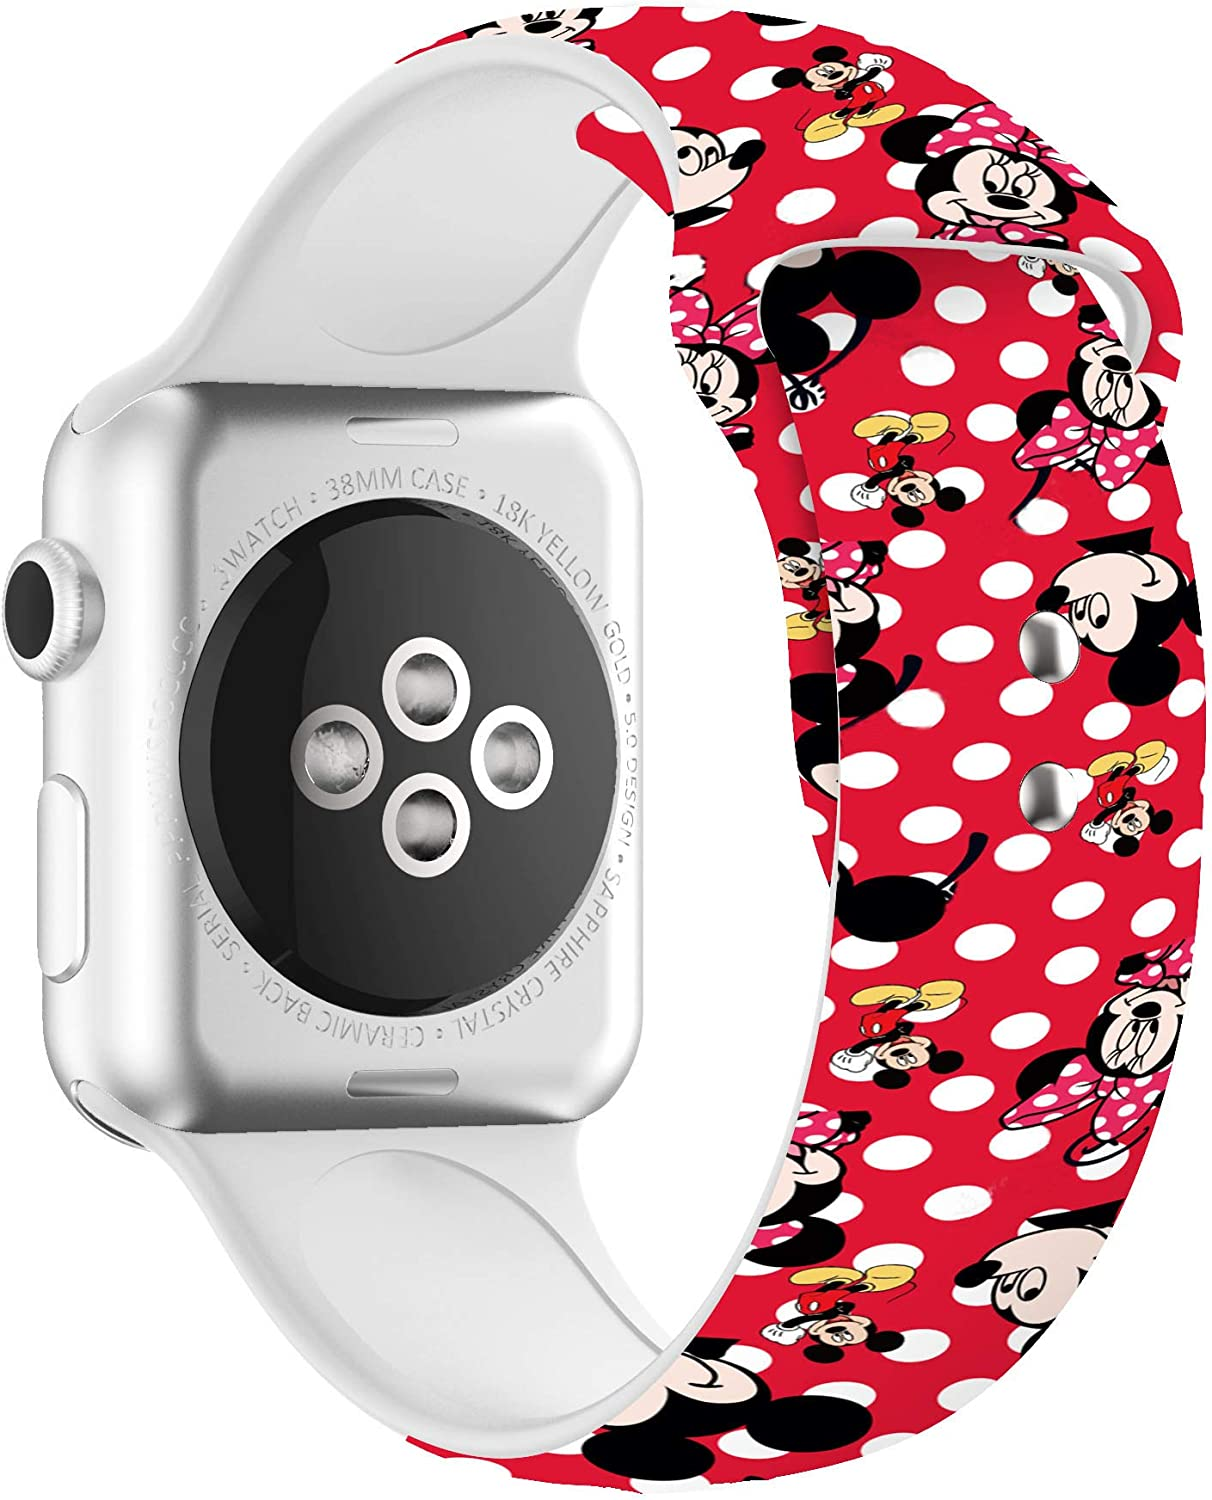 Cartoon Mickey Minnie Silicone Bands for Apple Watch 38mm/40mm/42mm/44mm, Fit All Series 6/5/4/3/2/1 Men and Women Replacement Straps